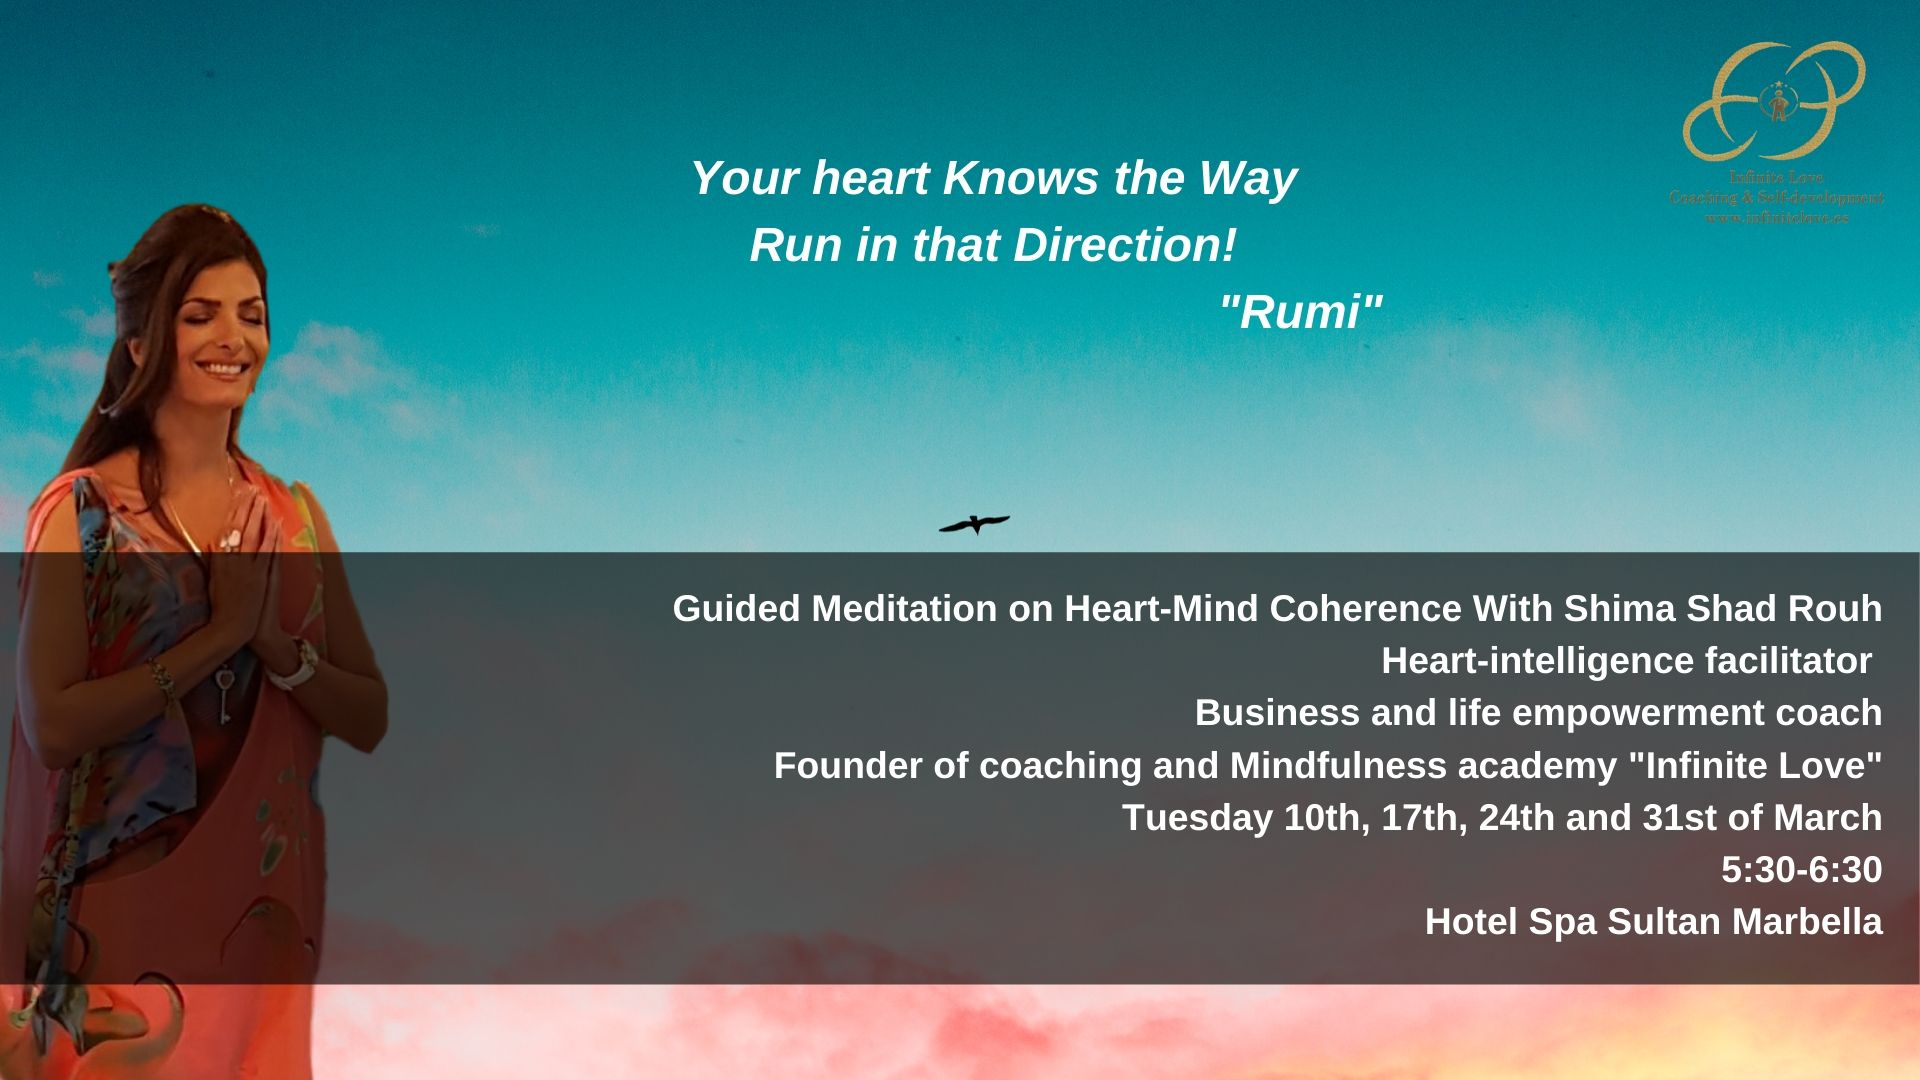 heart coherence with shima shad rouh Marbella Spain